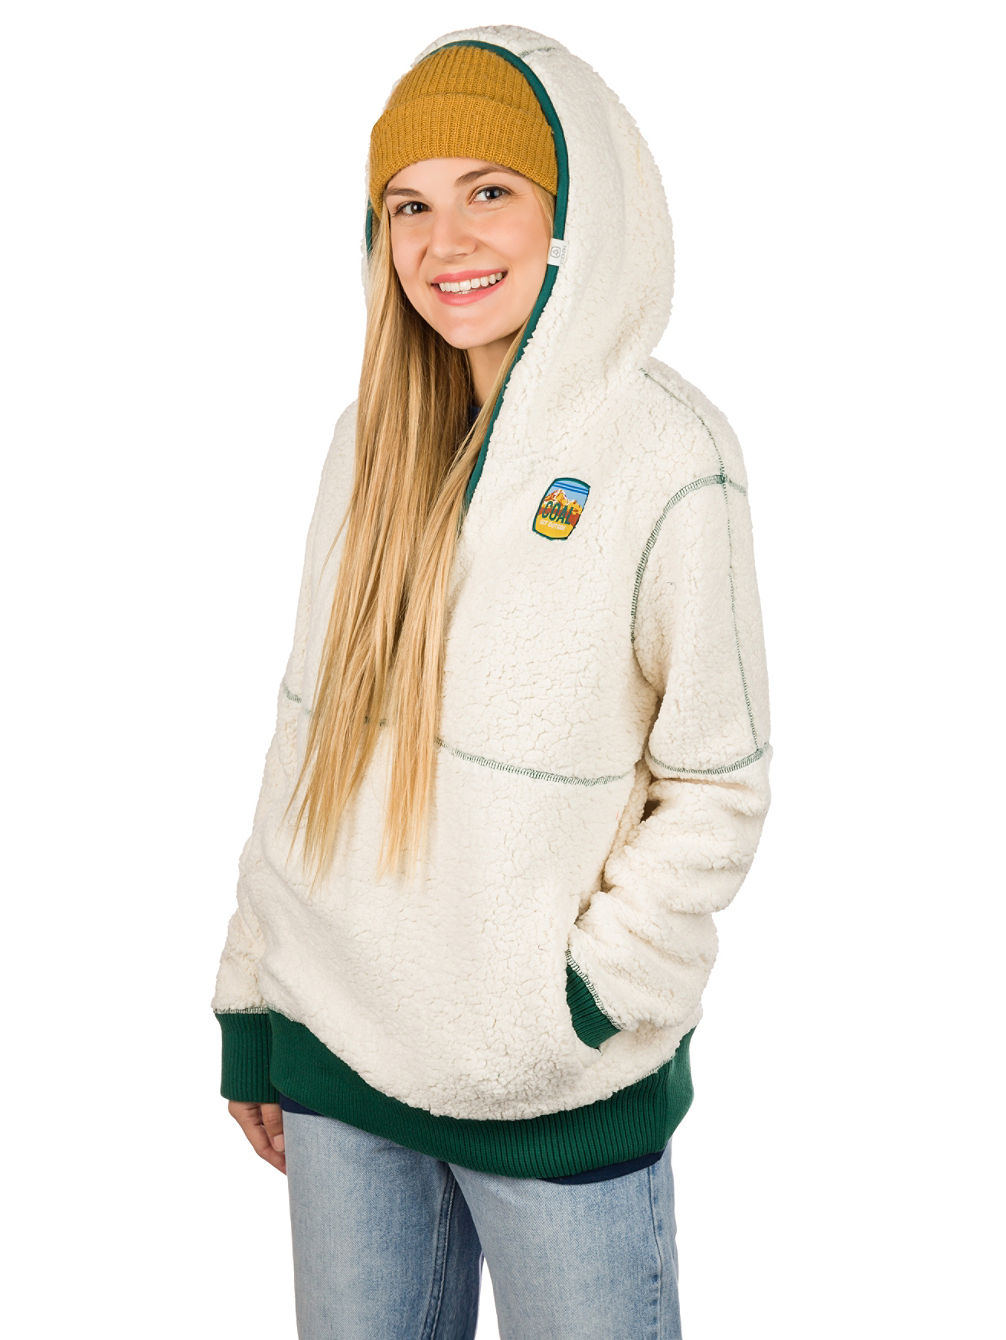 Del Campo Fleece Pulover s kapuco